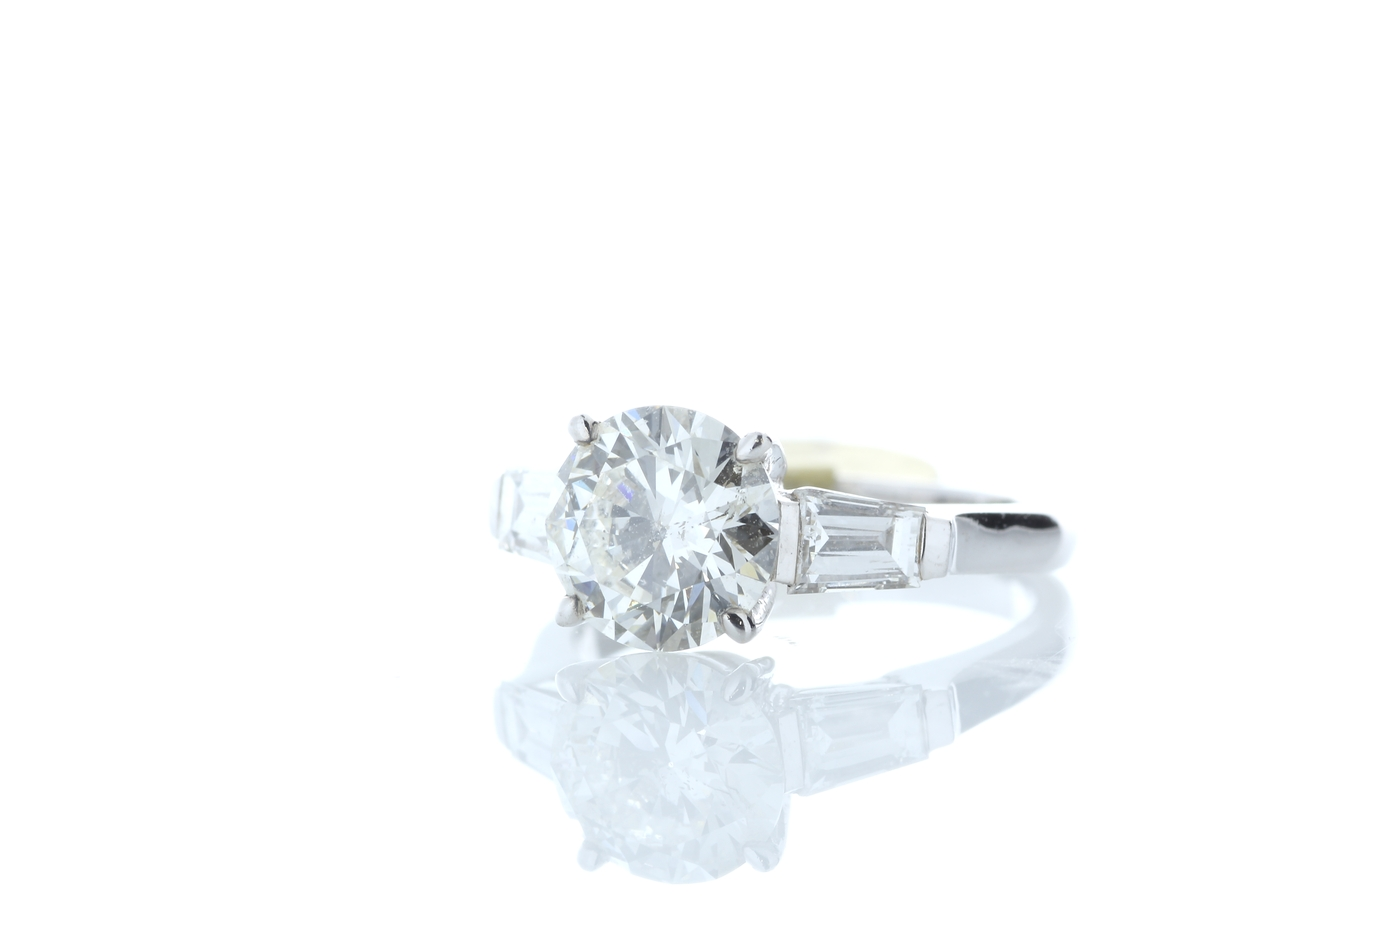 18ct White Gold Baguette Shoulders Diamond Ring 2.20 Carats - Image 2 of 5